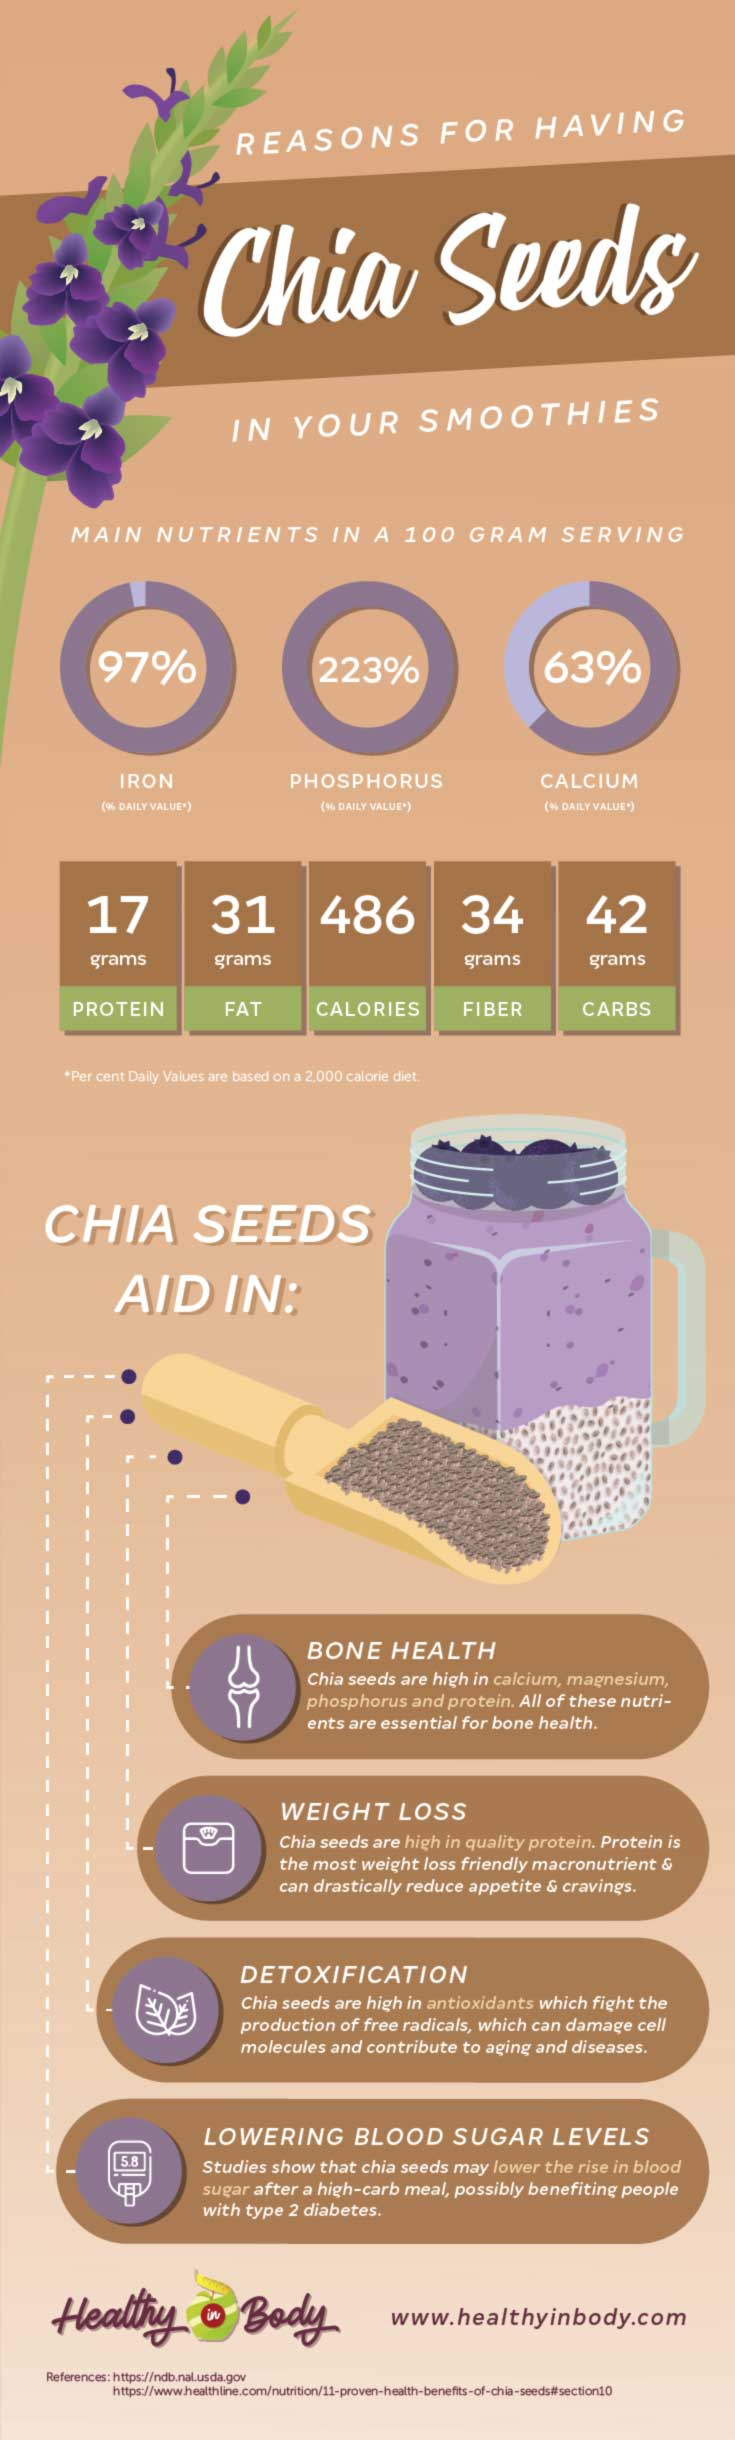 An info-graphic presenting the nutrient content and health benefits of chia seeds and an illustration of a chia seeds next to a glass of a smoothie with chia seed pudding